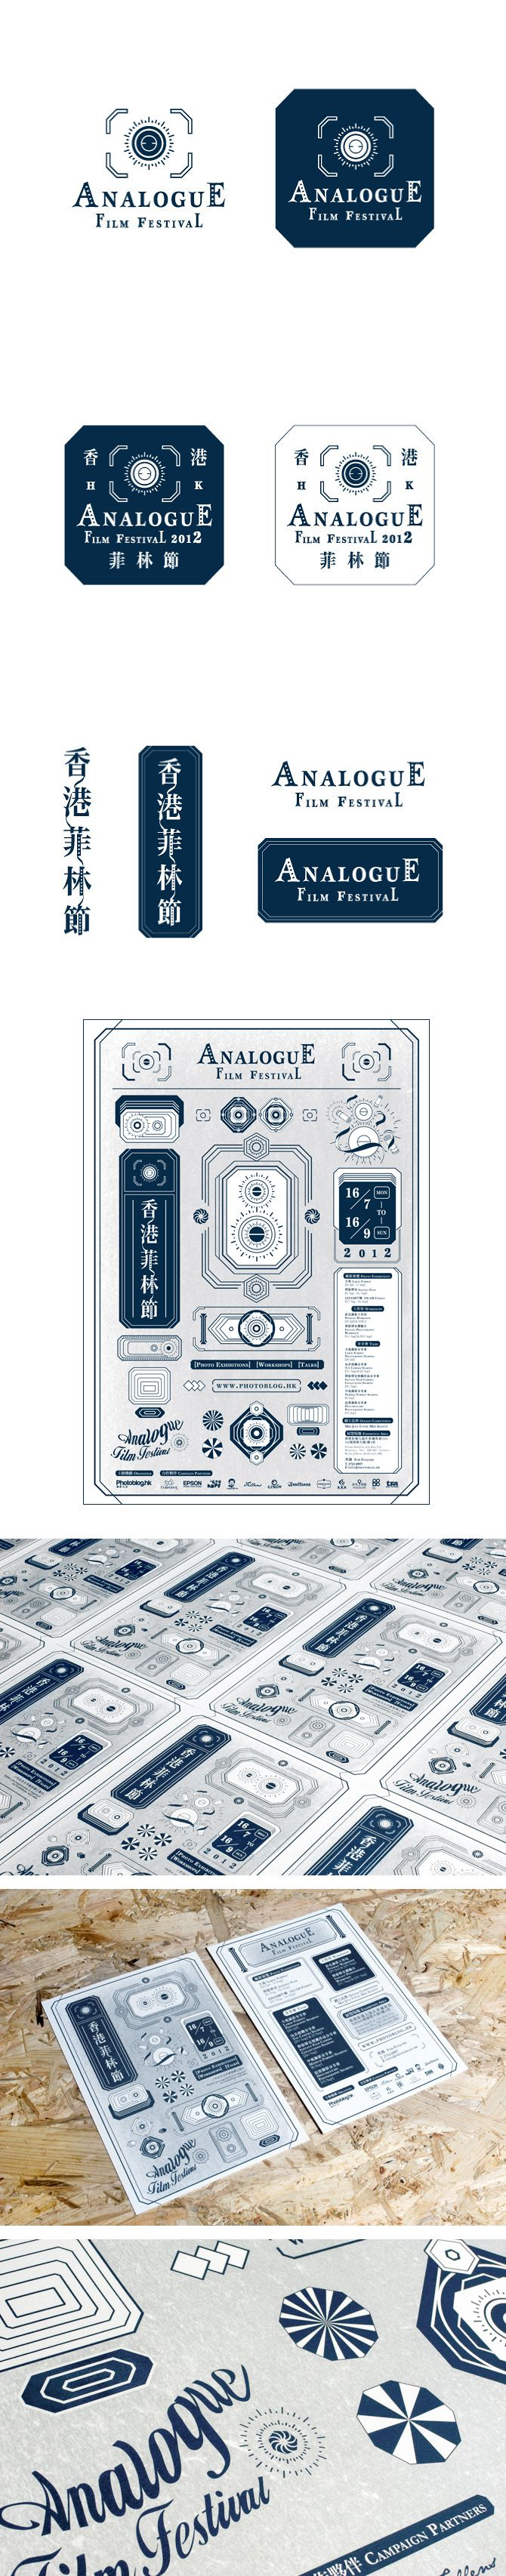 Analogue Film Festival